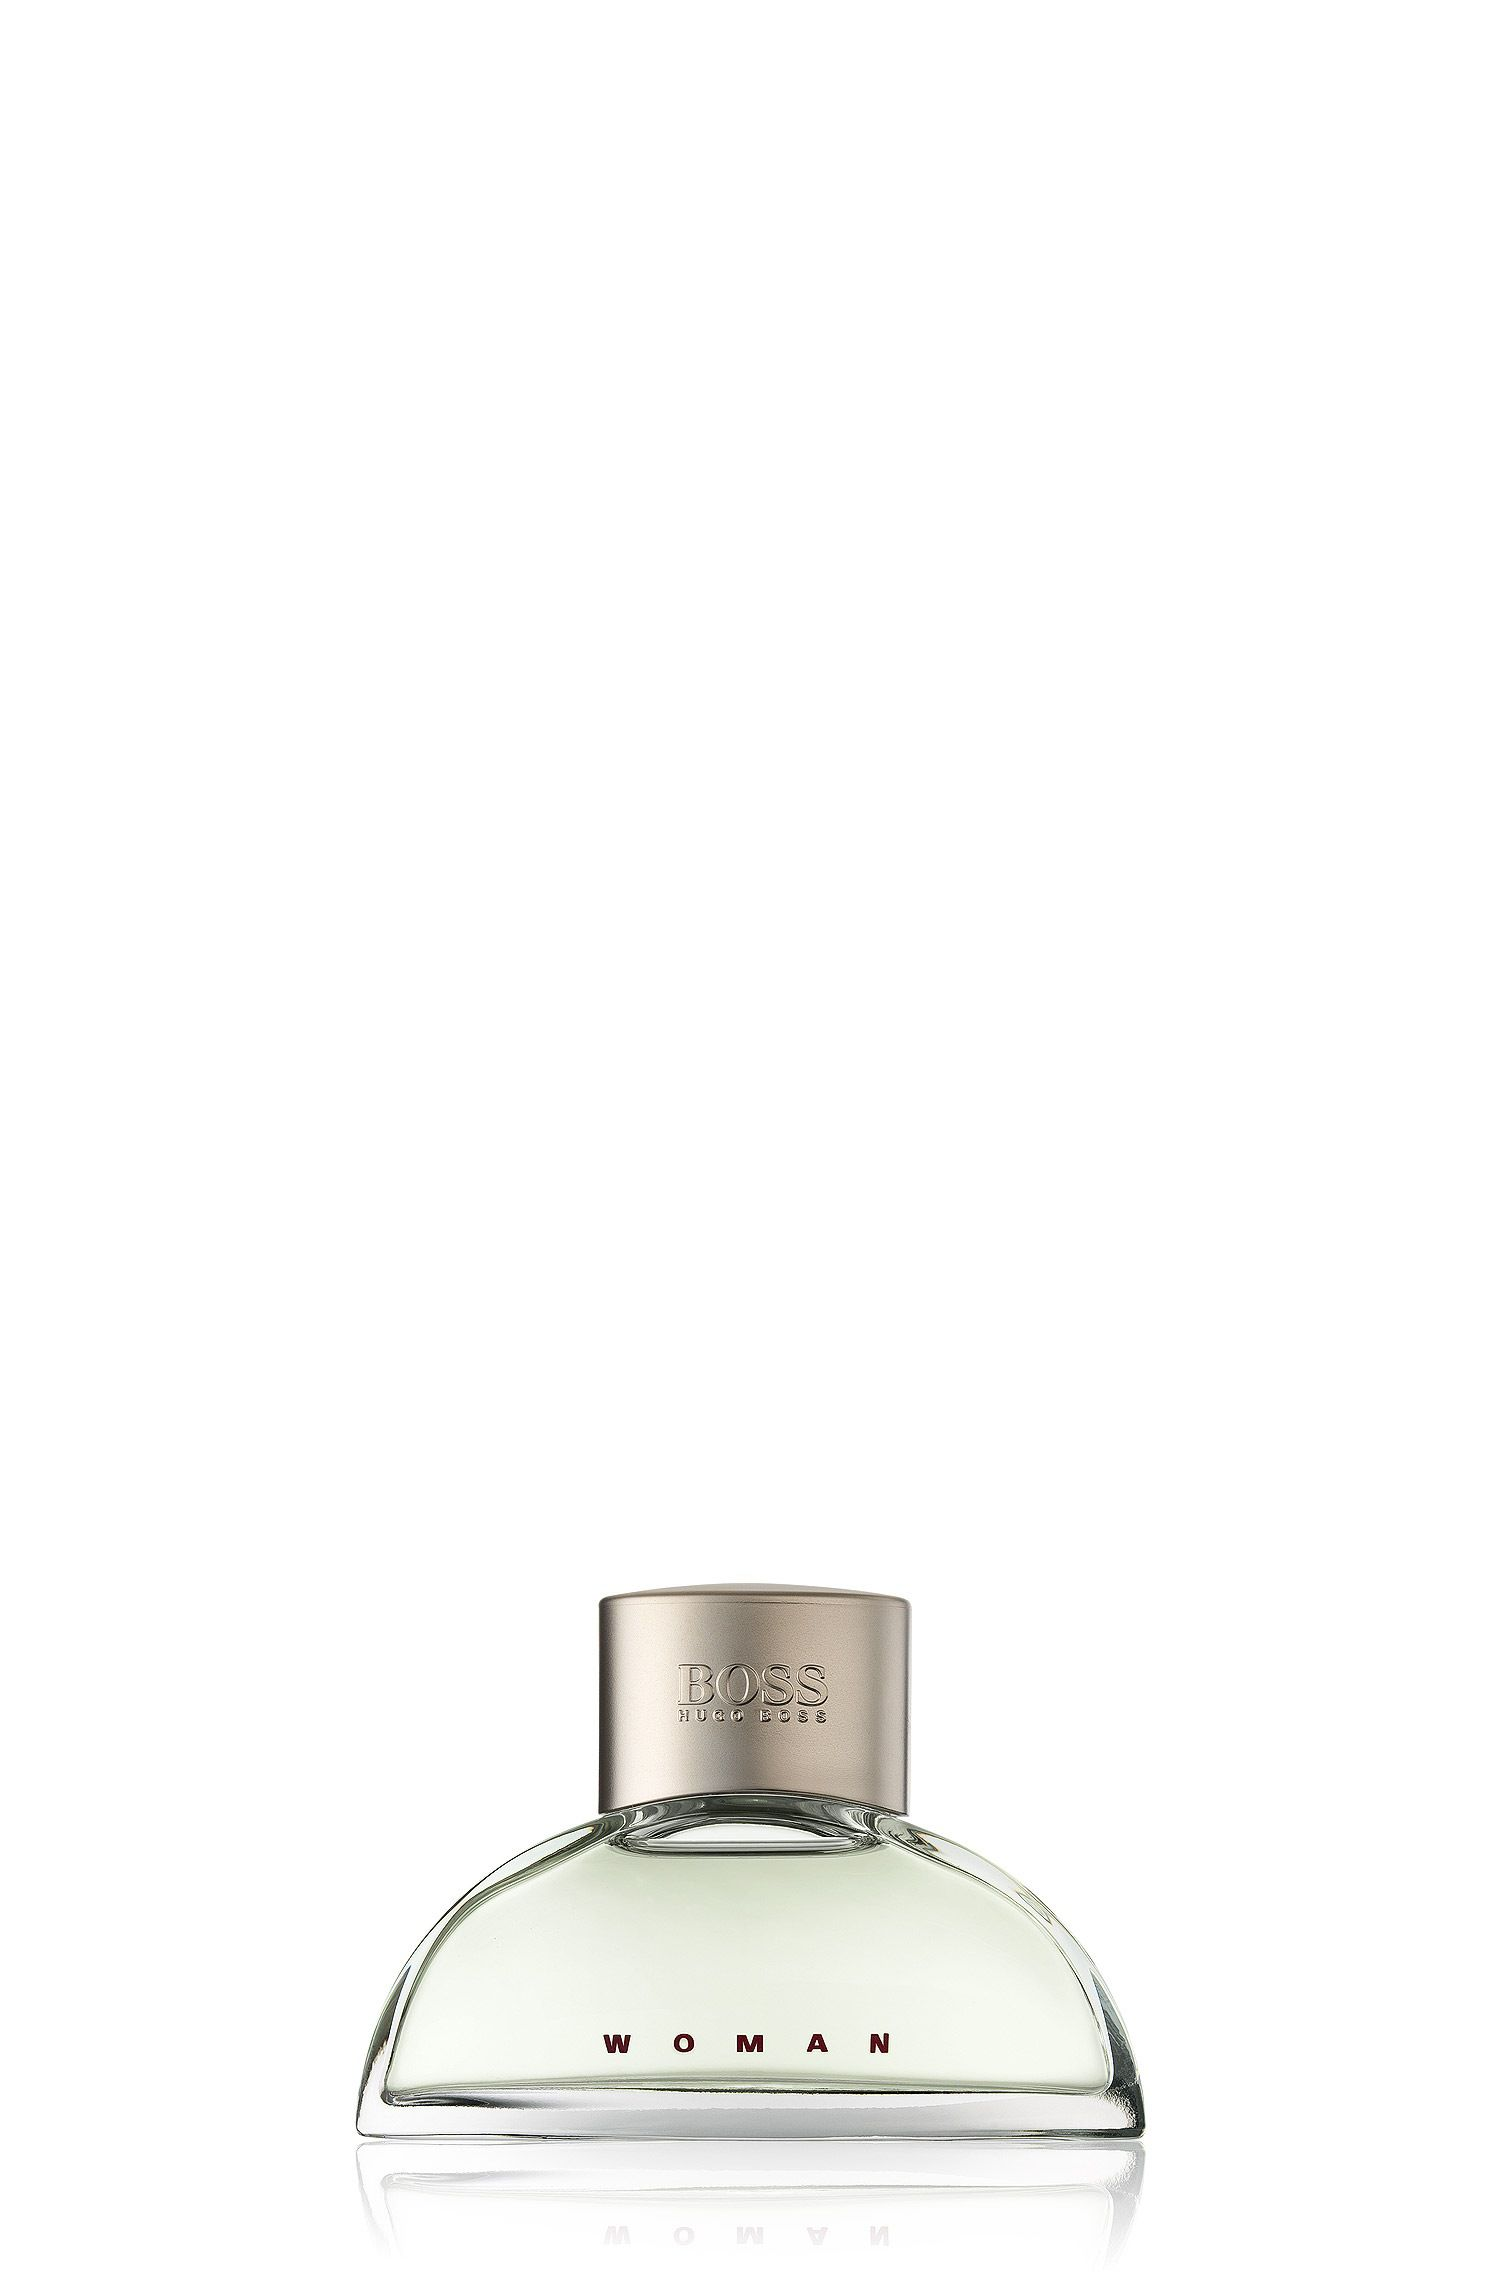 Eau de Parfum BOSS Woman, 50 ml